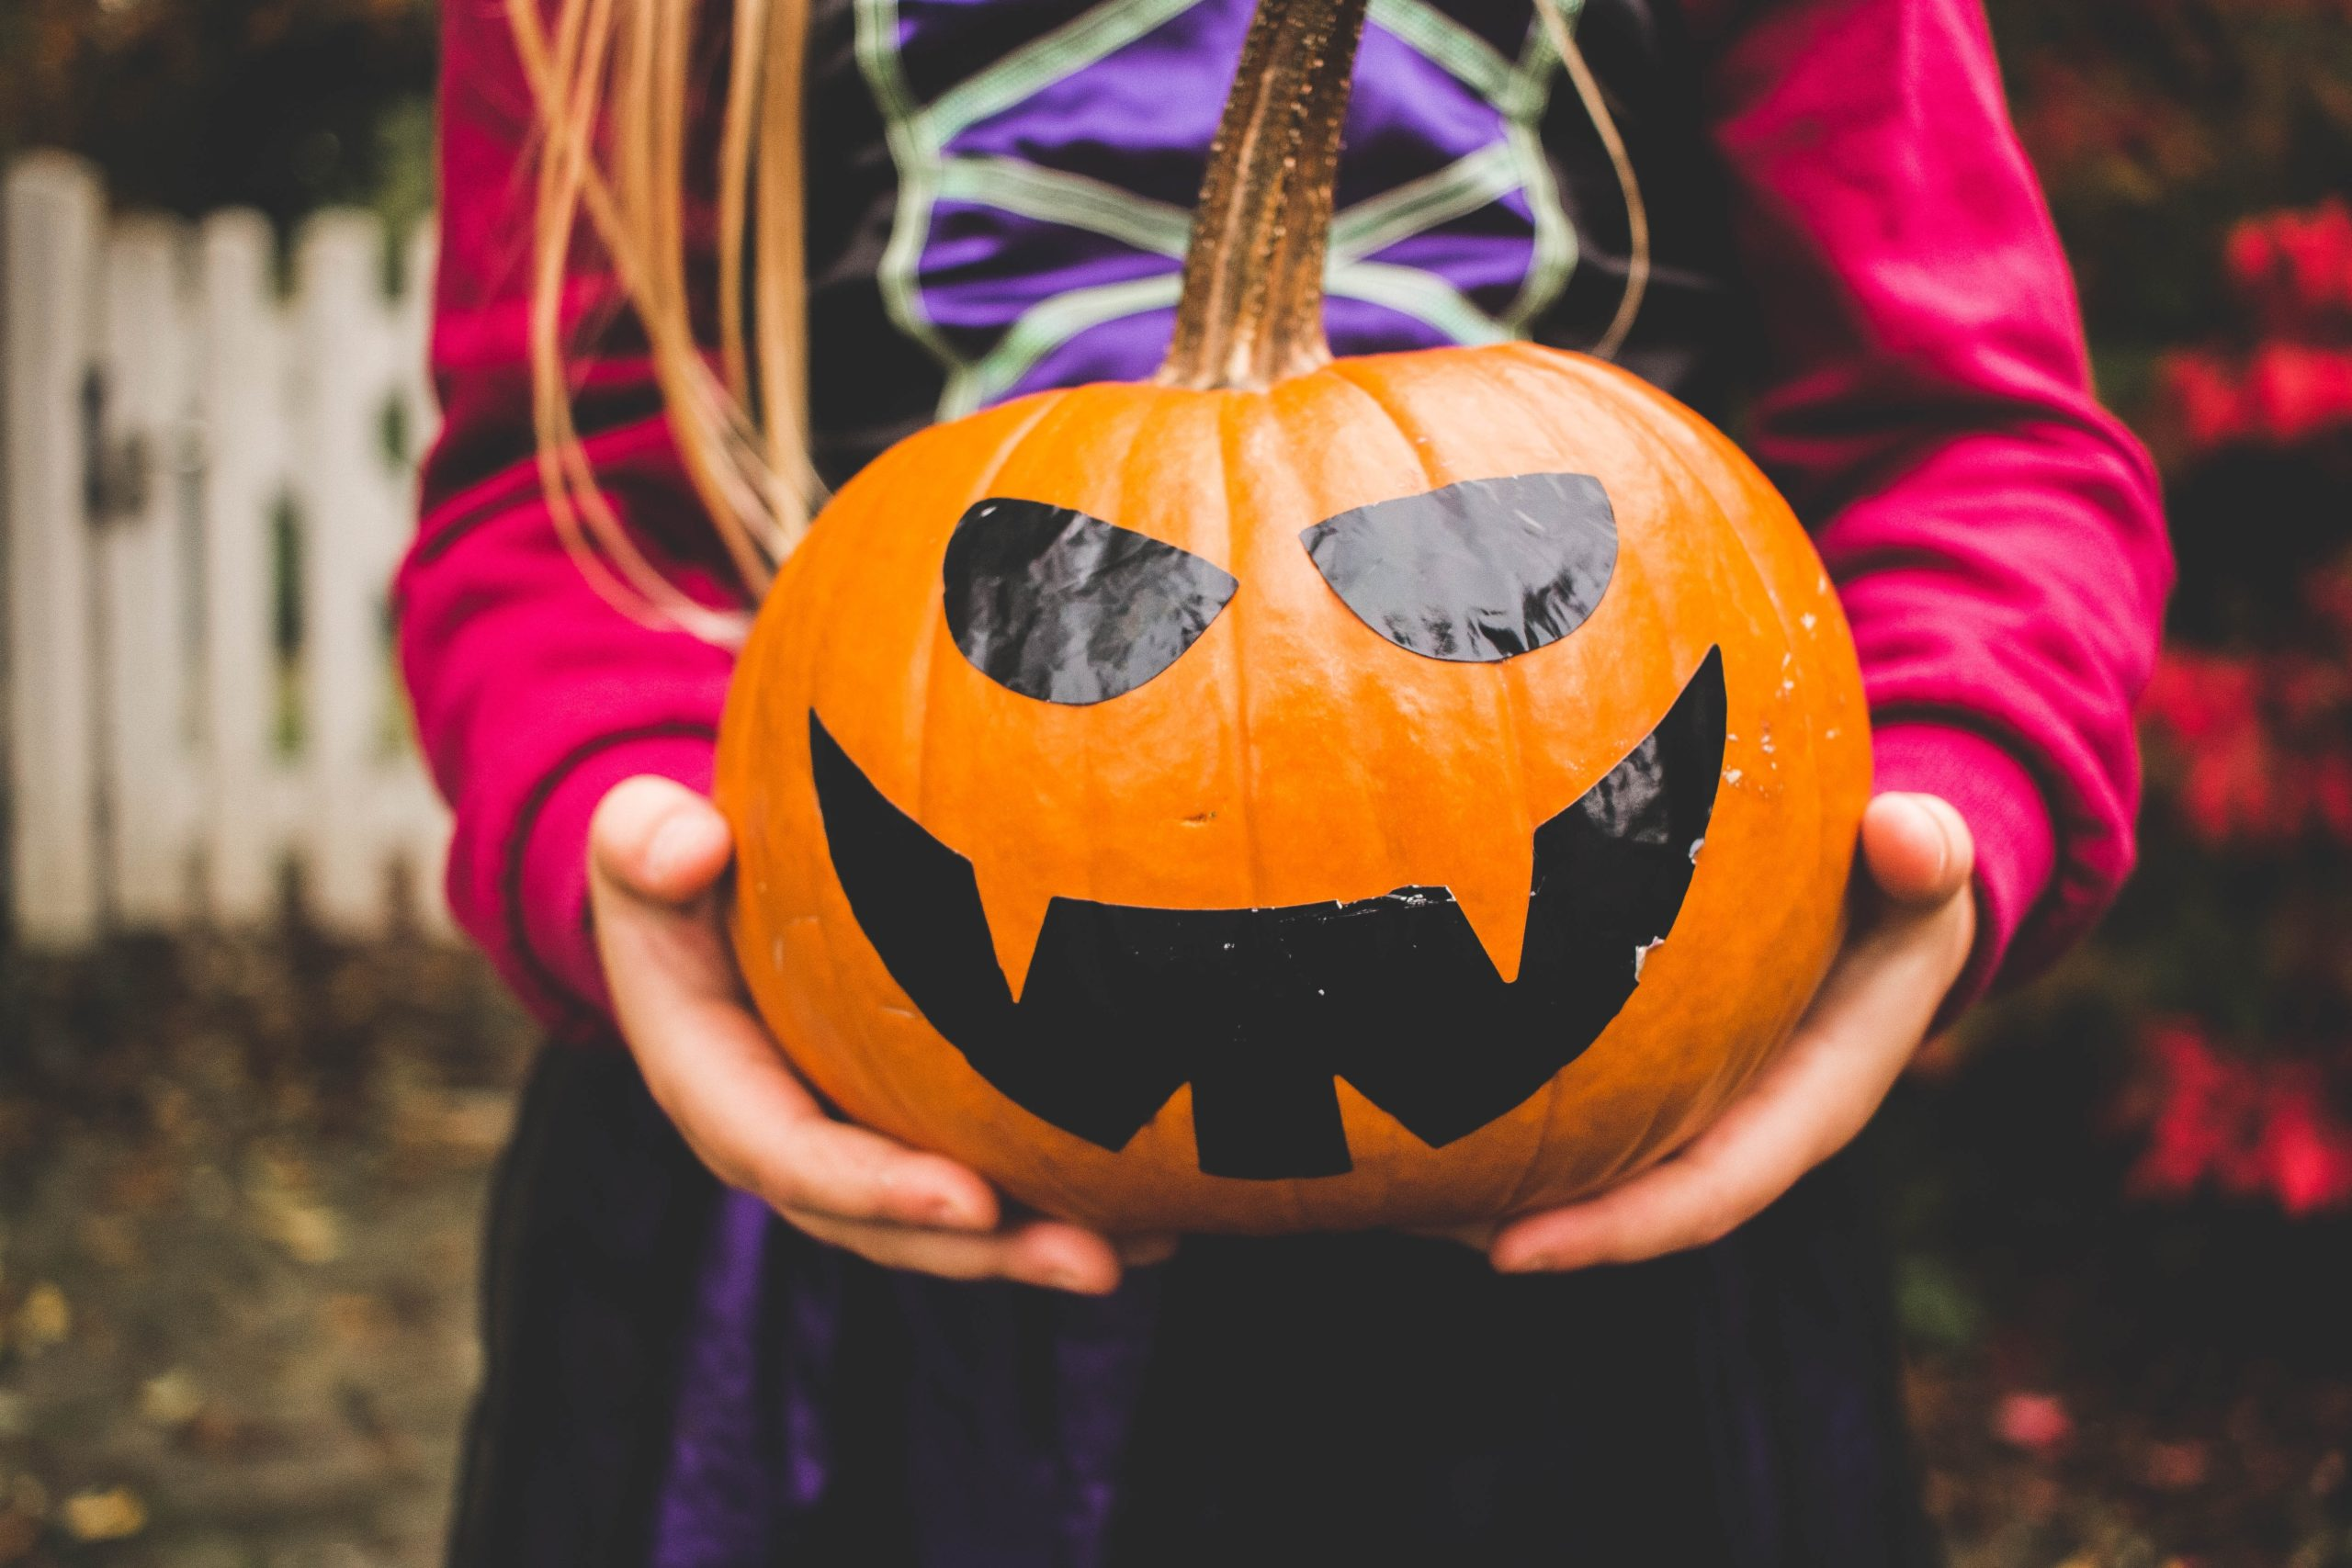 Halloween celebrations: a child dressed up as a witch holds a pumpkin with a scary face